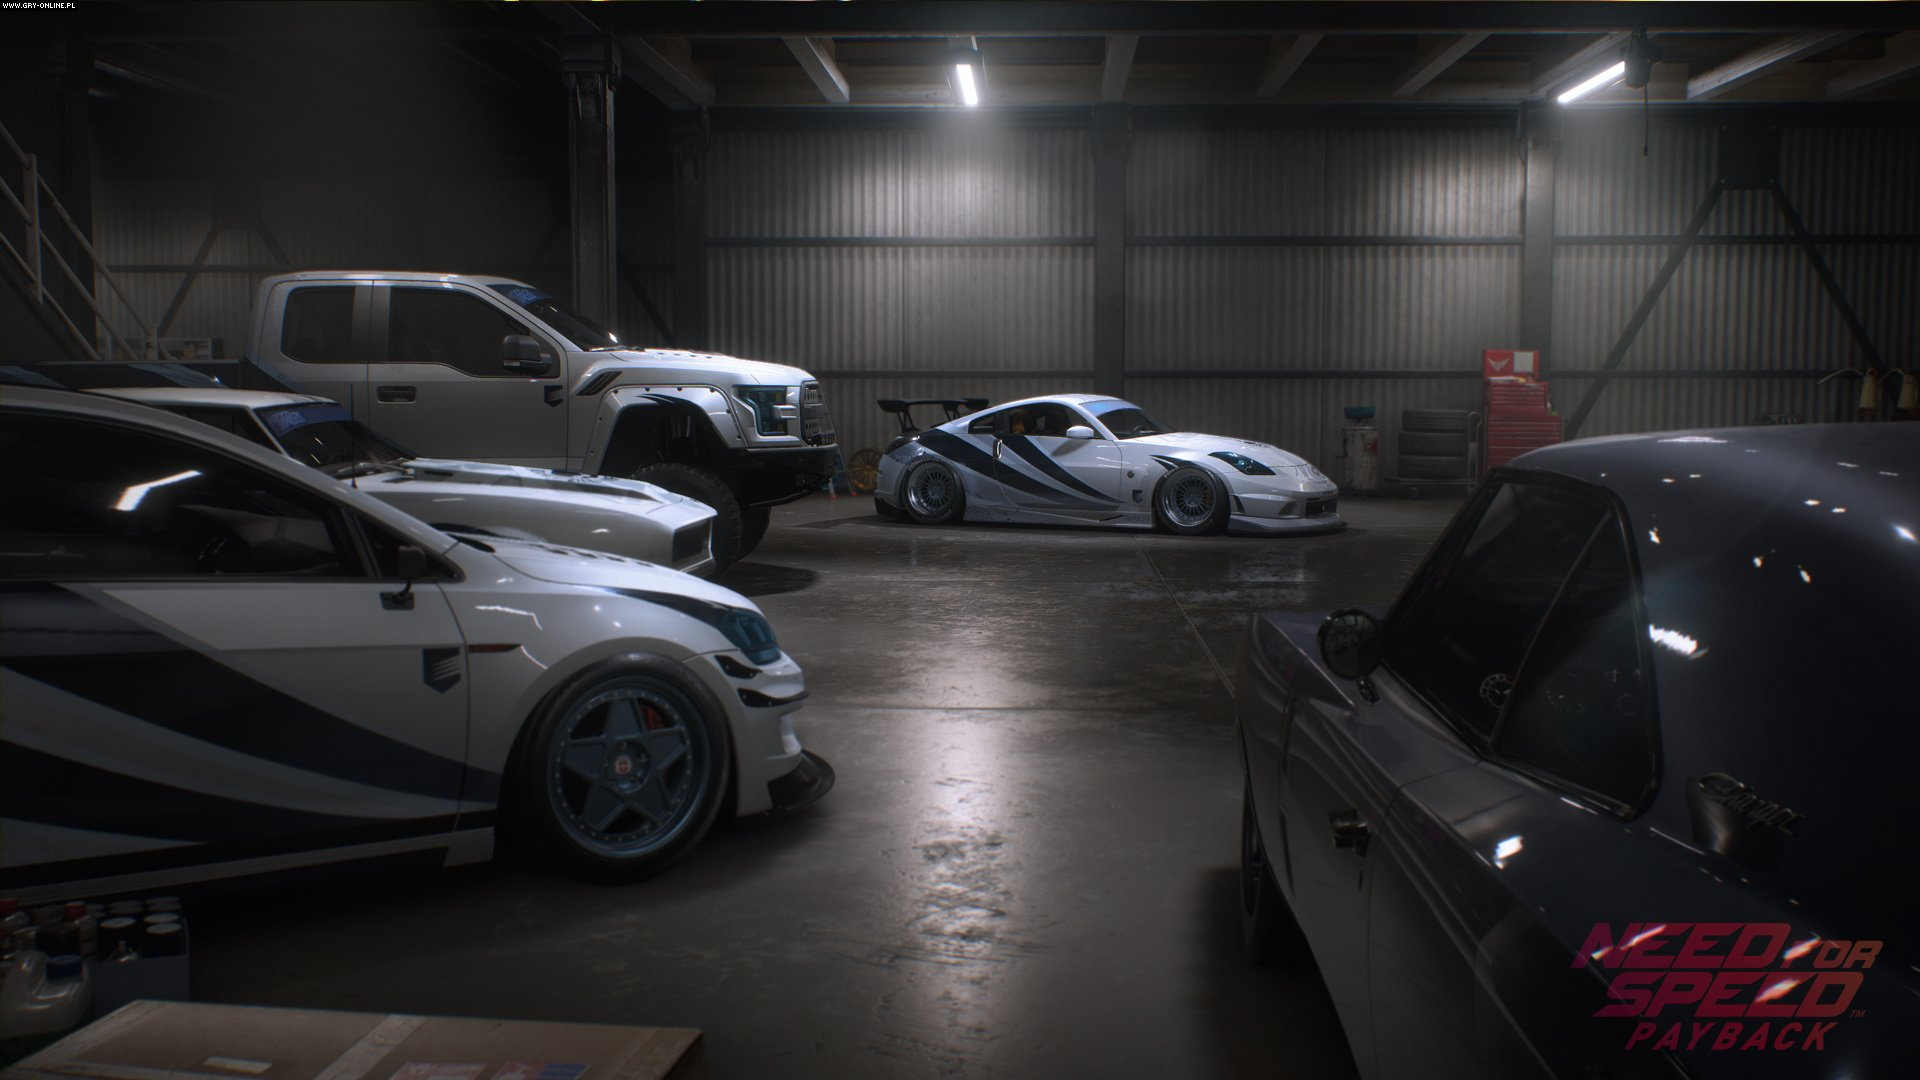 Need for Speed: Payback PC, PS4, XONE Games Image 8/11, Ghost Games, Electronic Arts Inc.